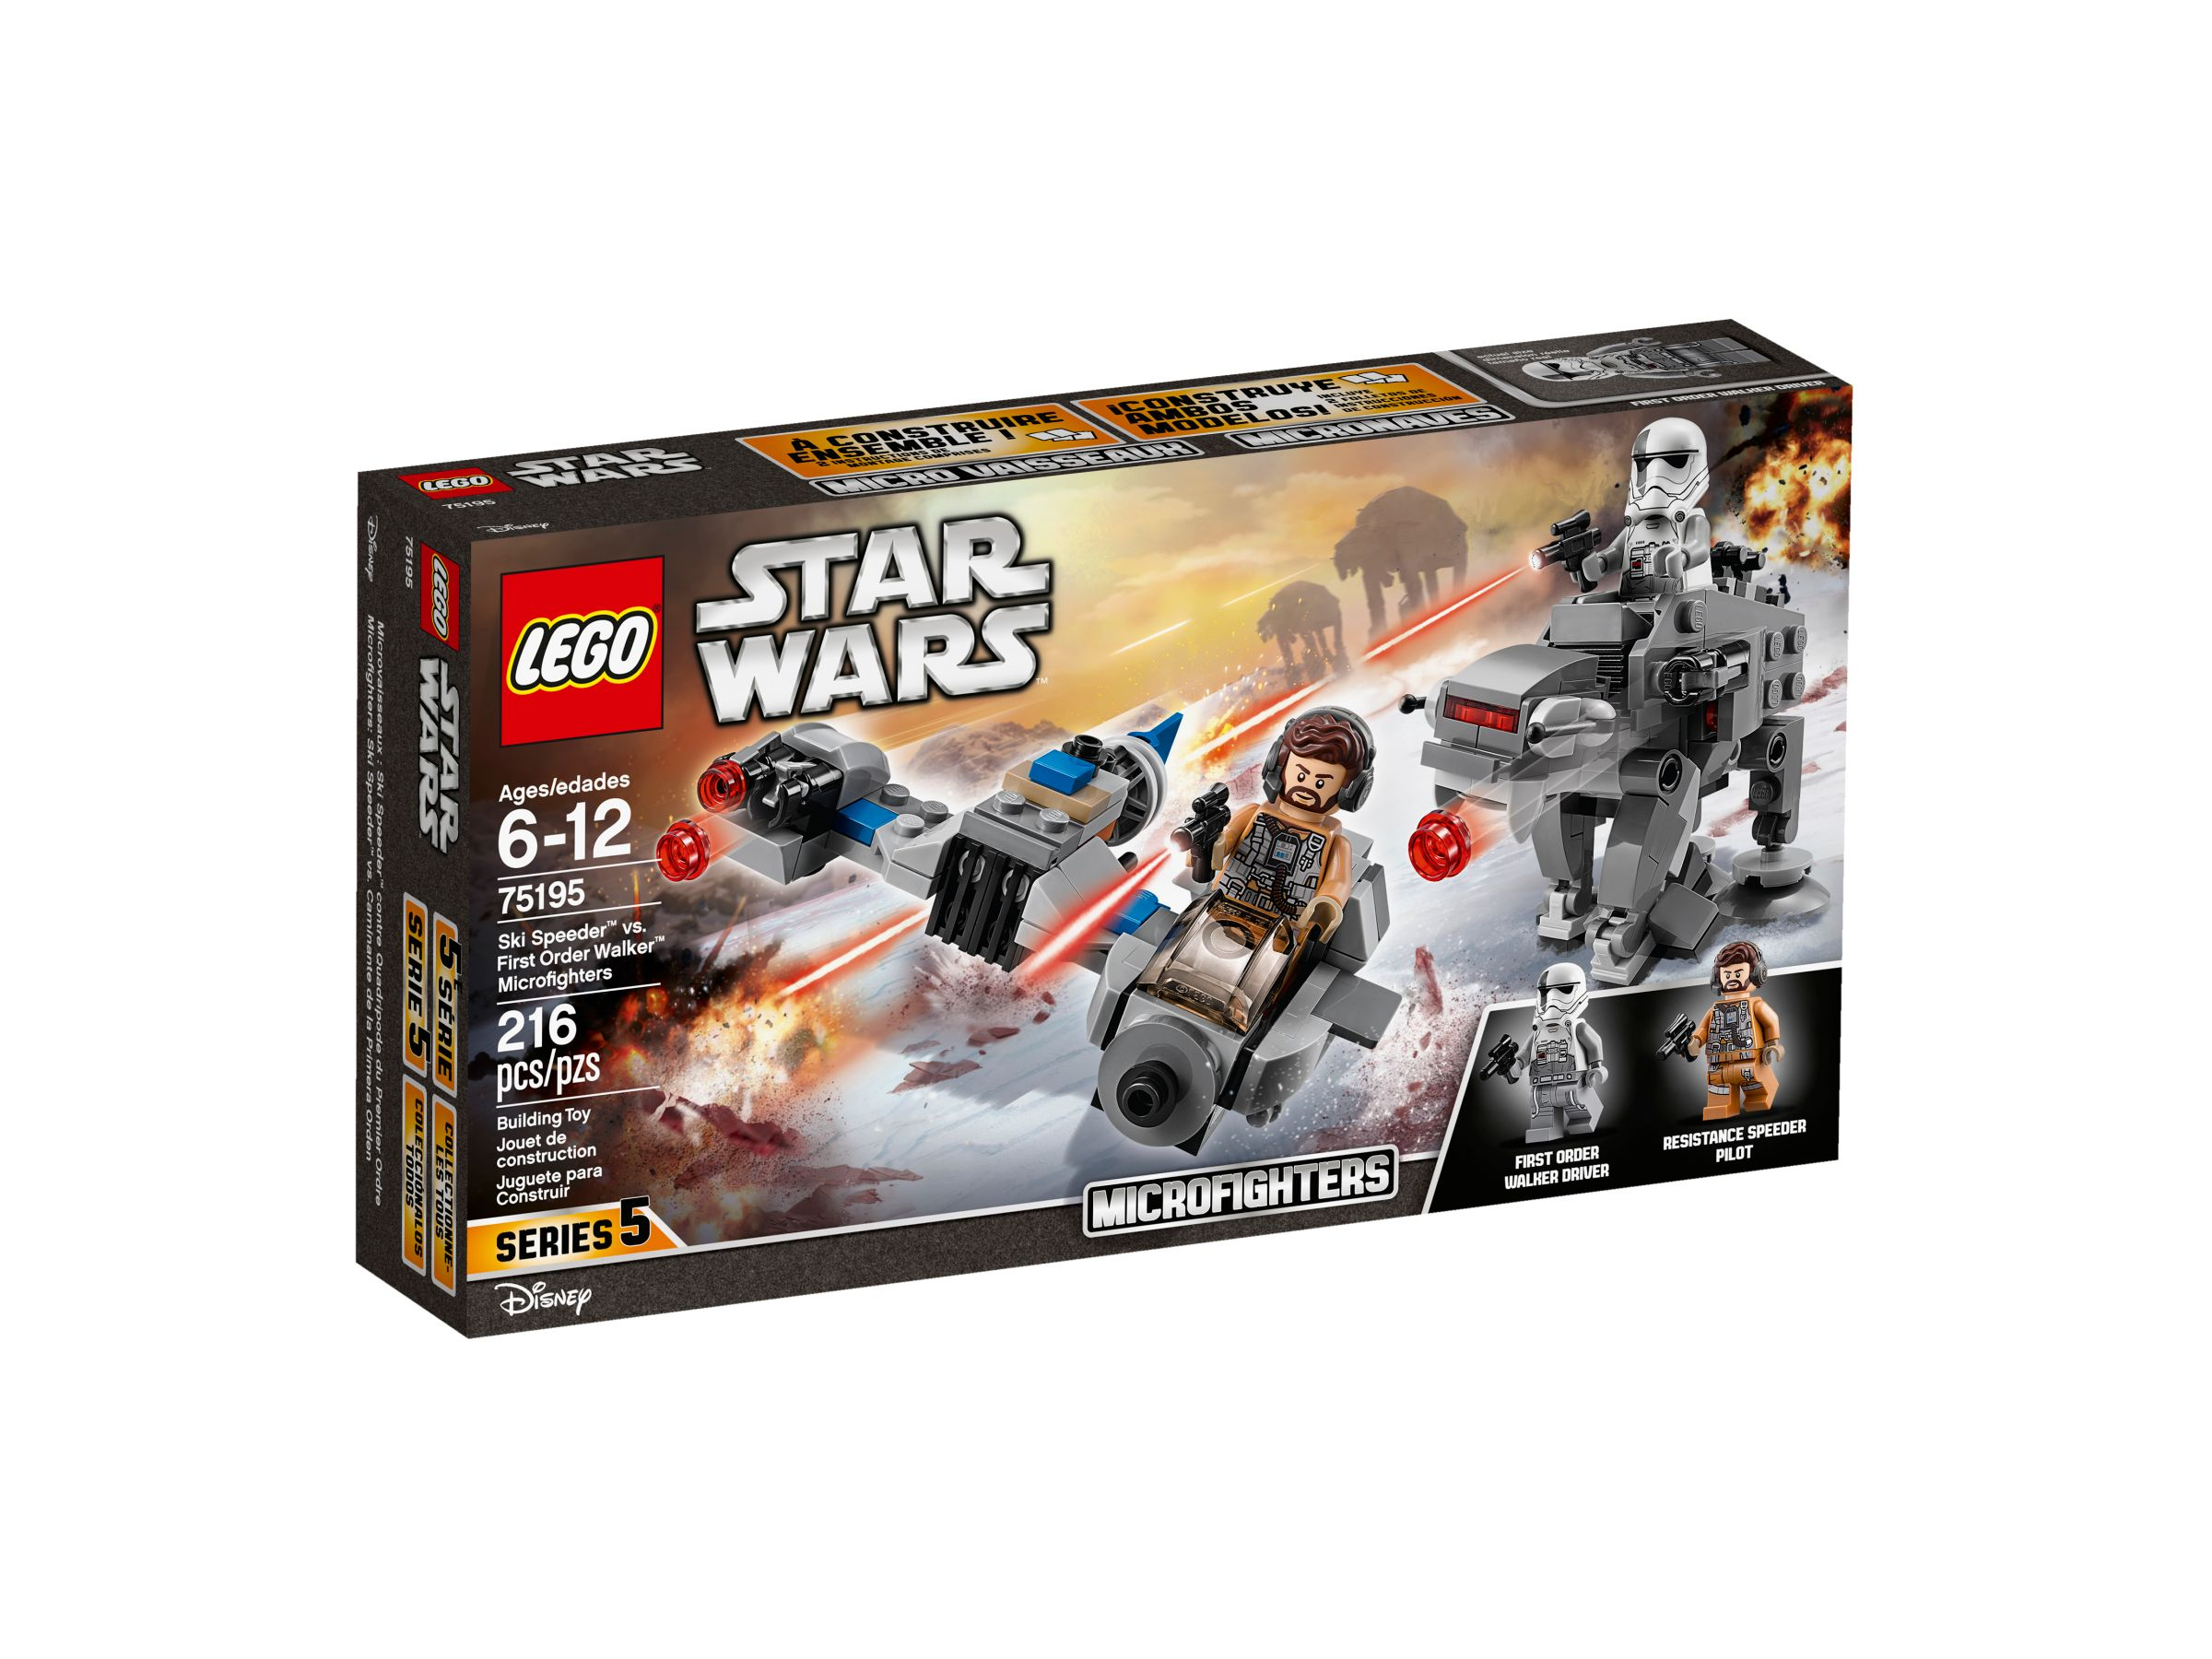 LEGO Star Wars 75195 Ski Speeder™ vs. First Order Walker™ Microfighters LEGO_75195_alt1.jpg